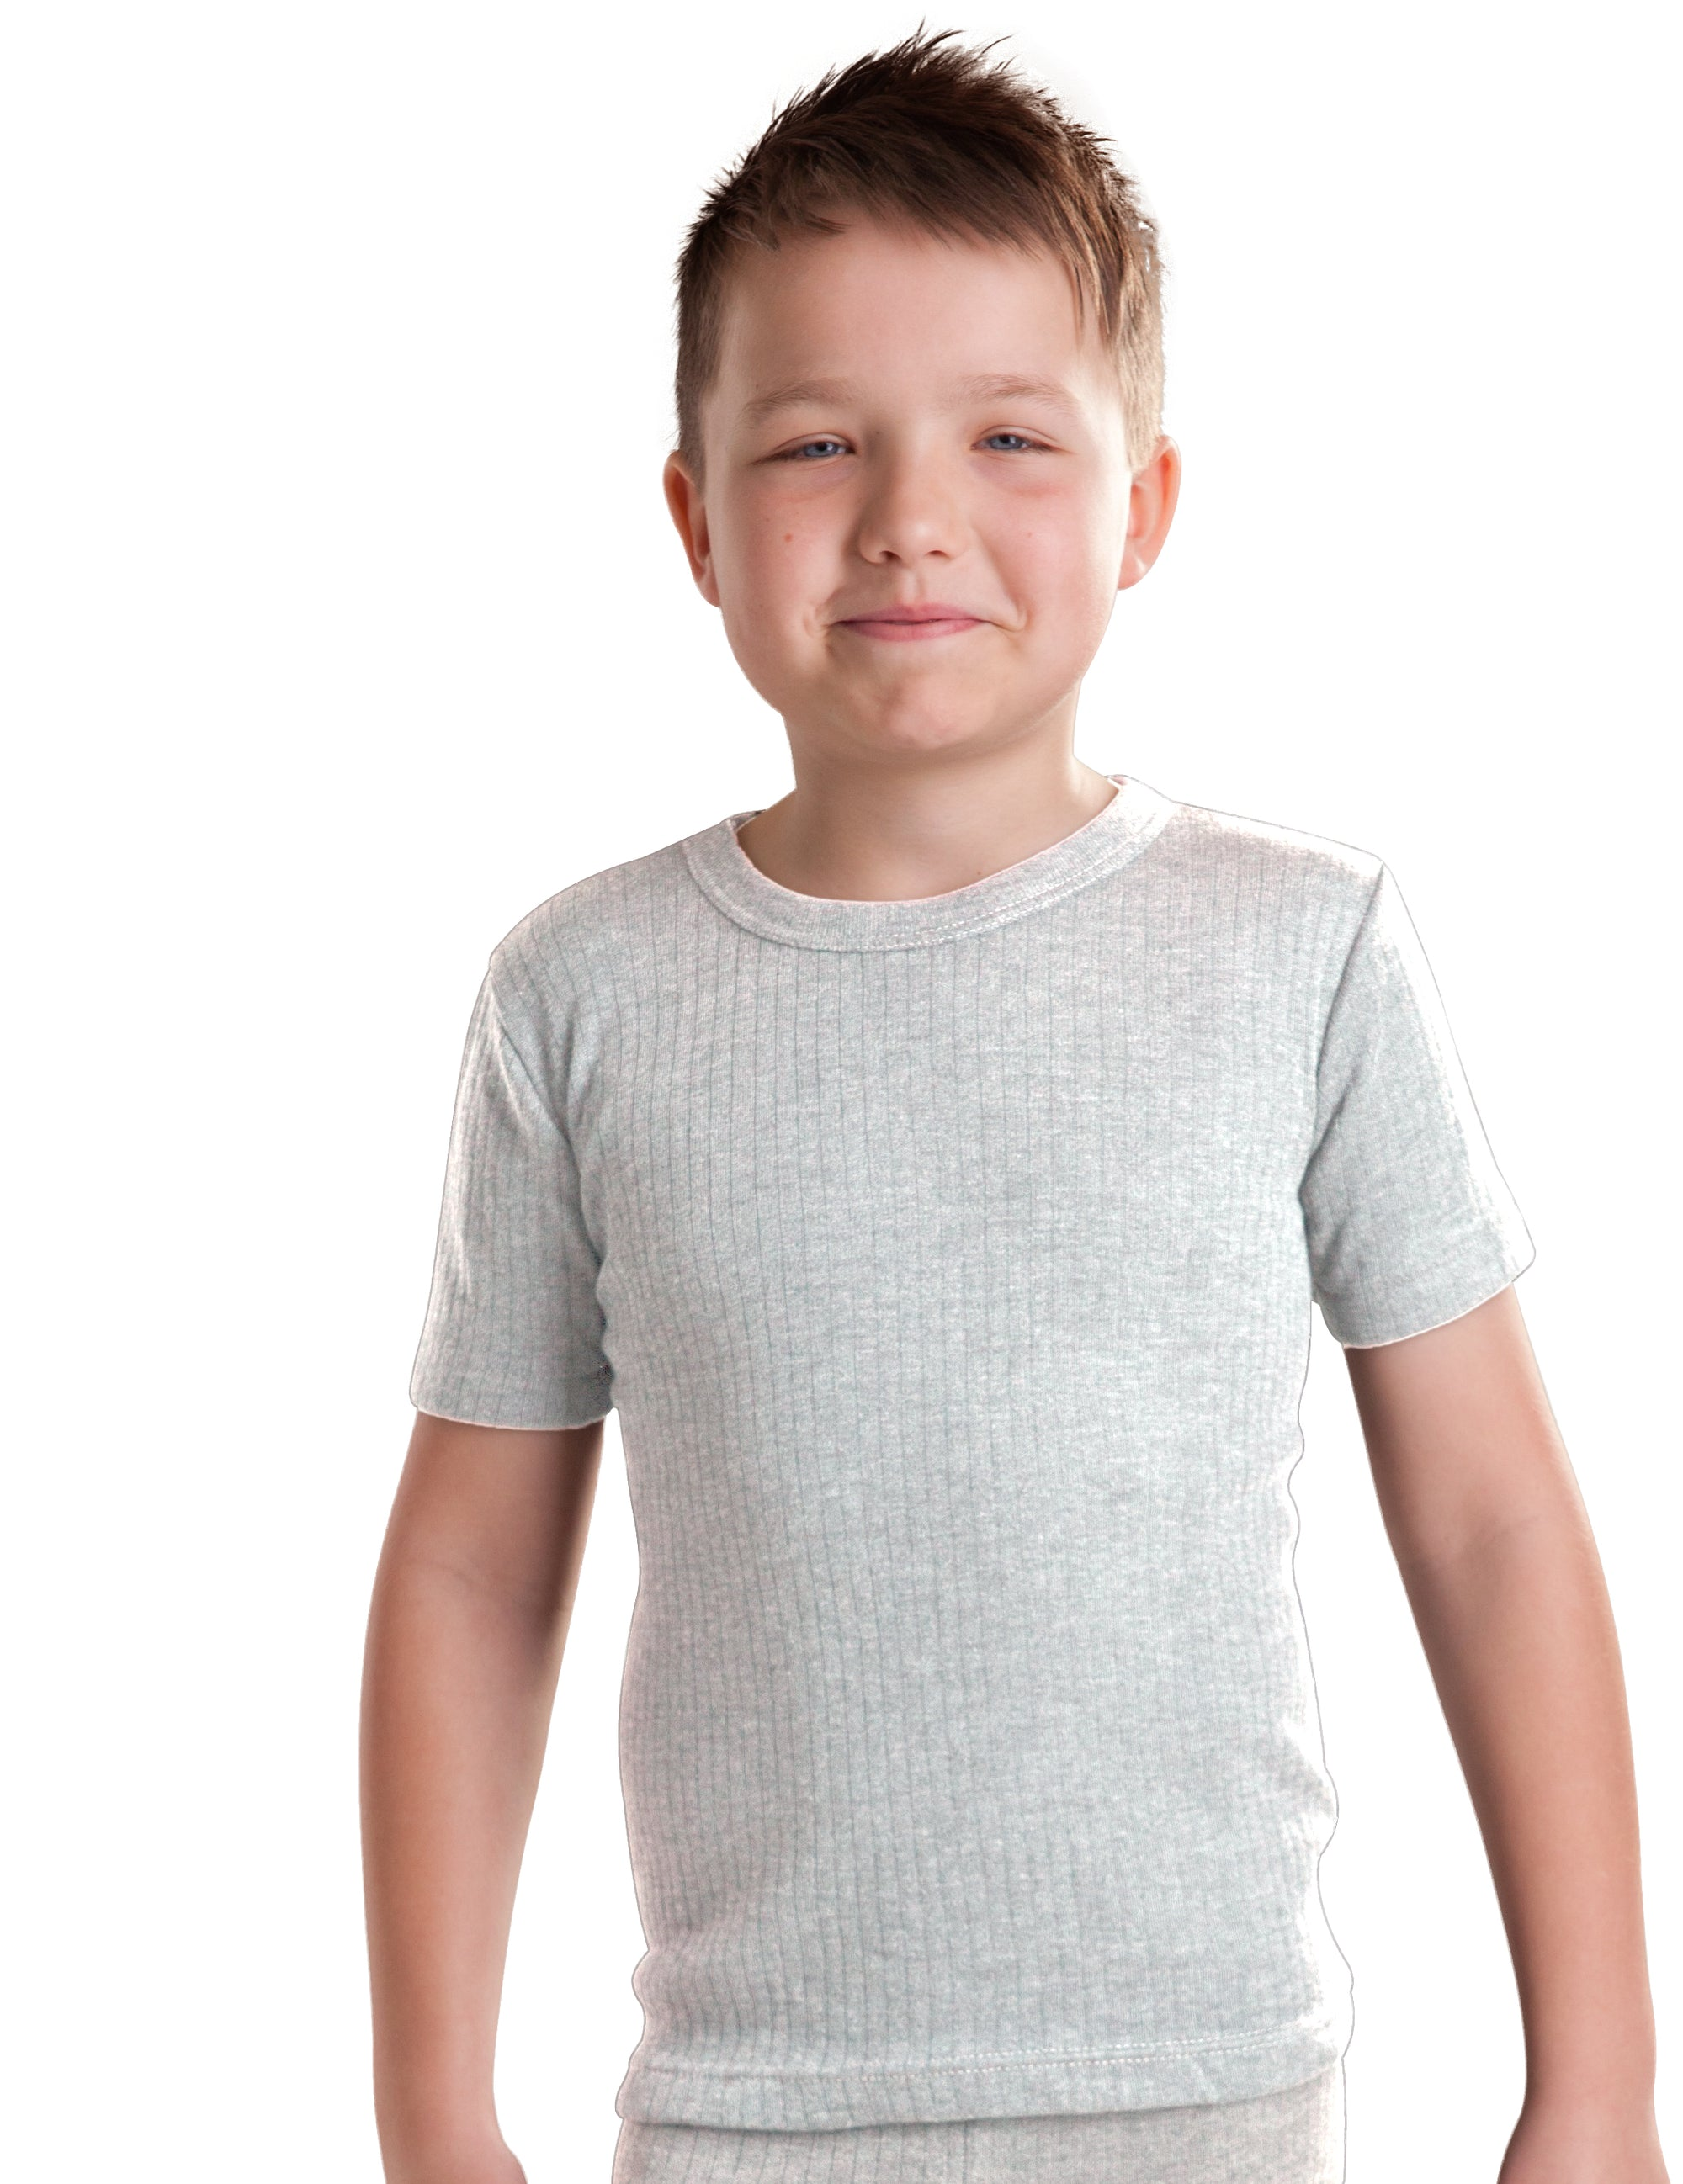 Extra Warm British Made RP Collections® Boys Thermal Underwear Short-Sleeve Top